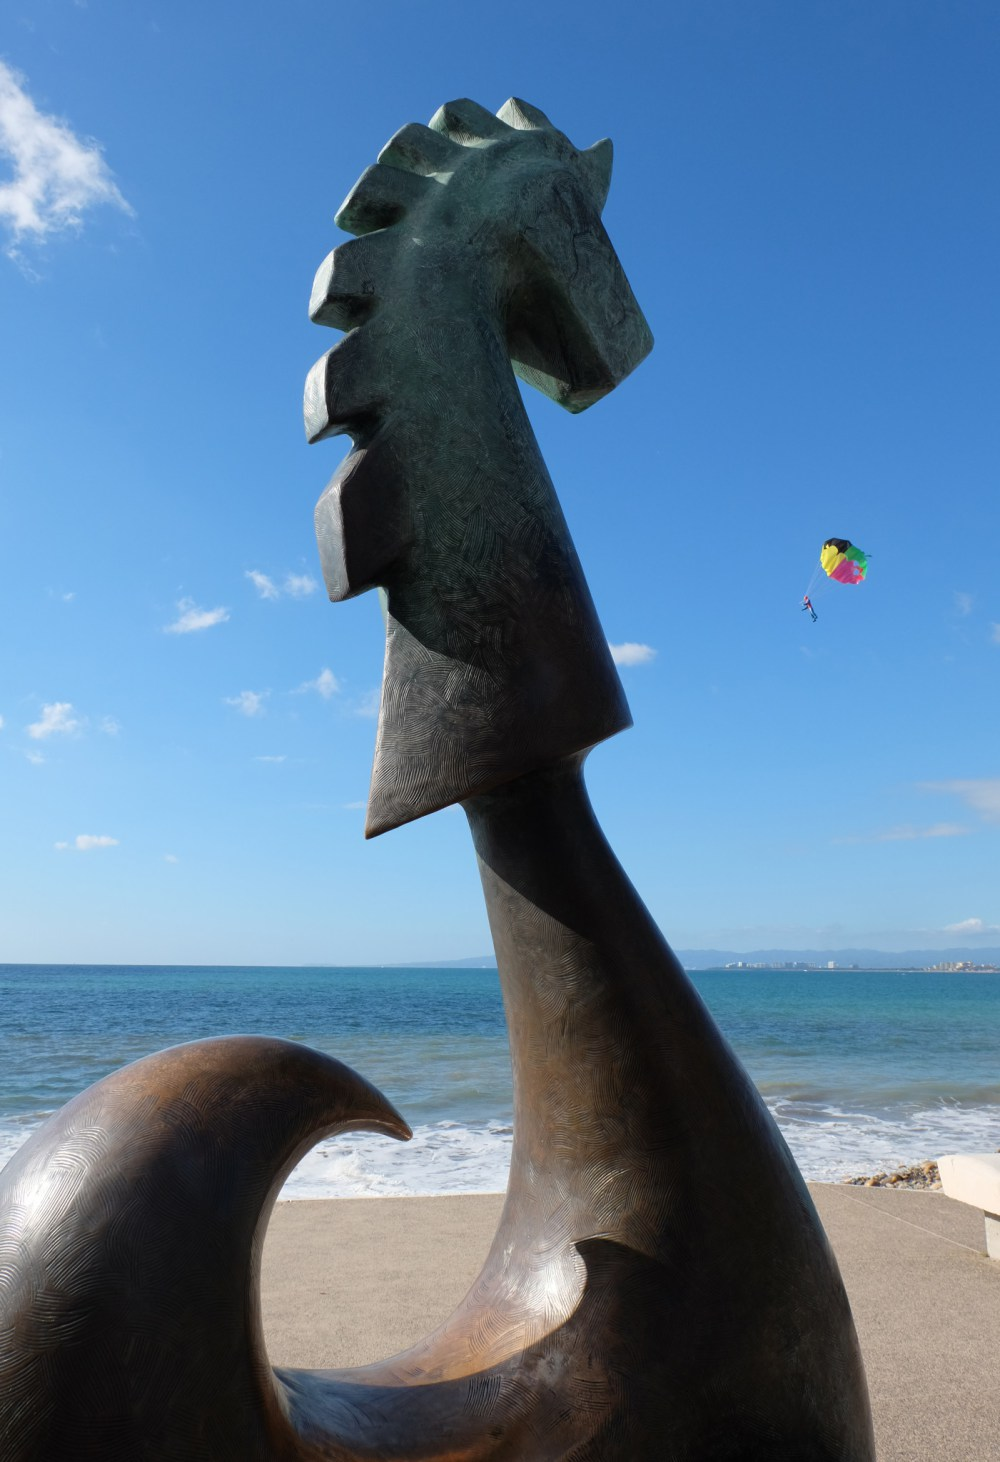 A sculpture on the Malecon